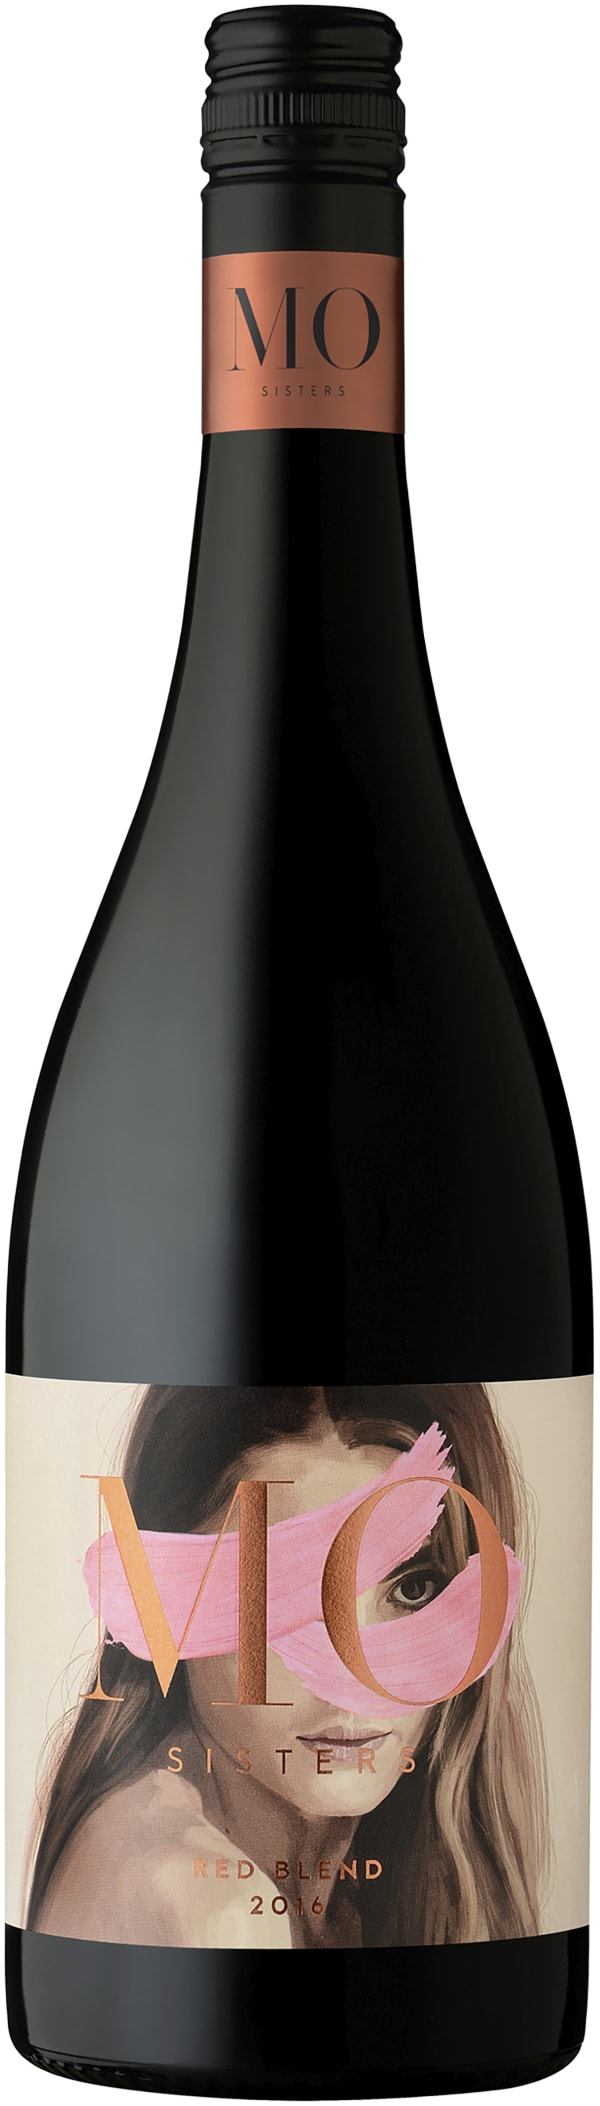 Mo Sisters Red Blend 2016